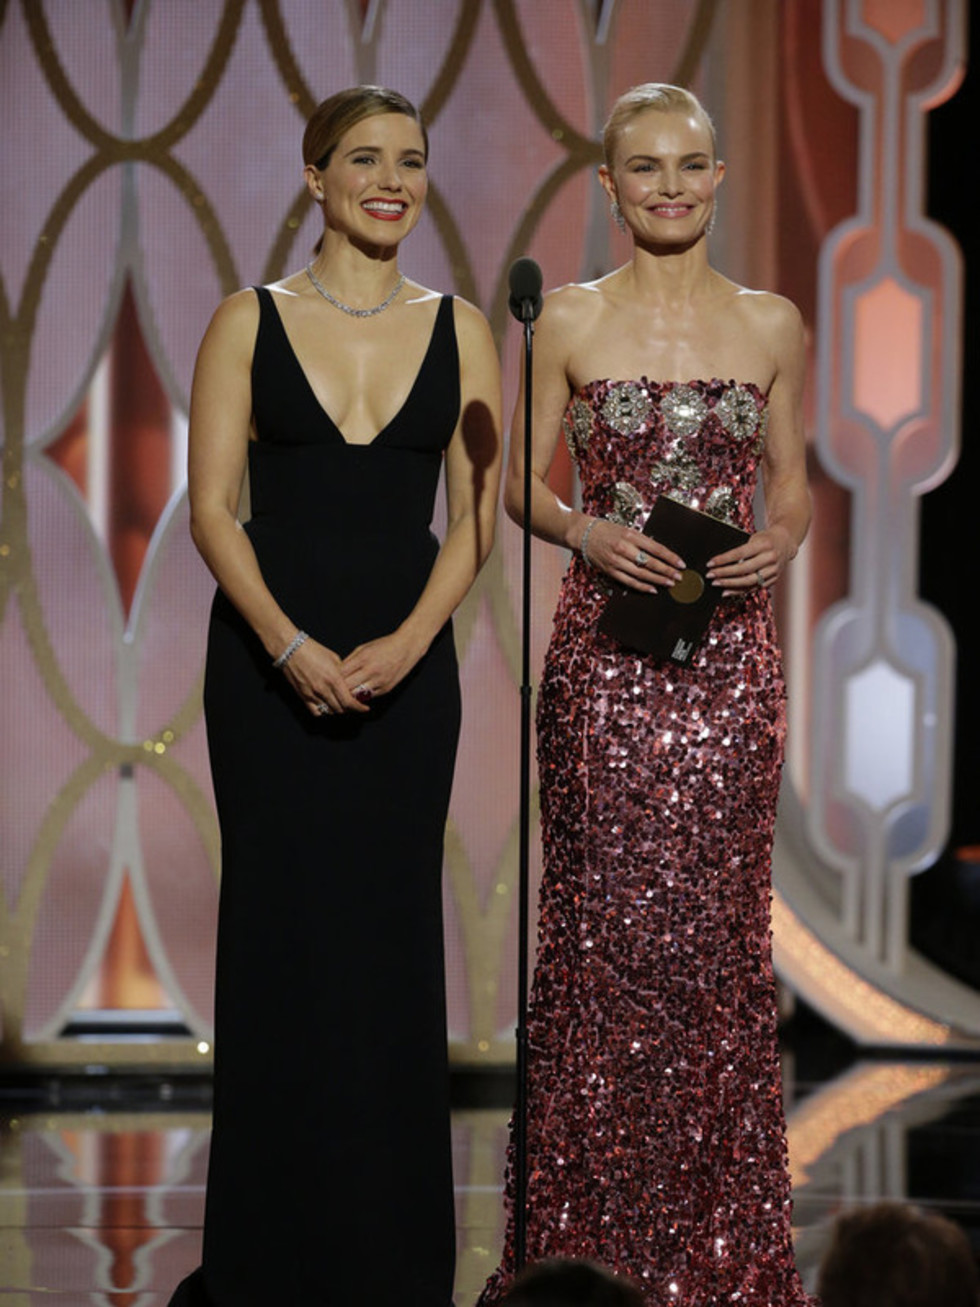 Sophia Bush and Kate Bosworth at Golden Globe Awards